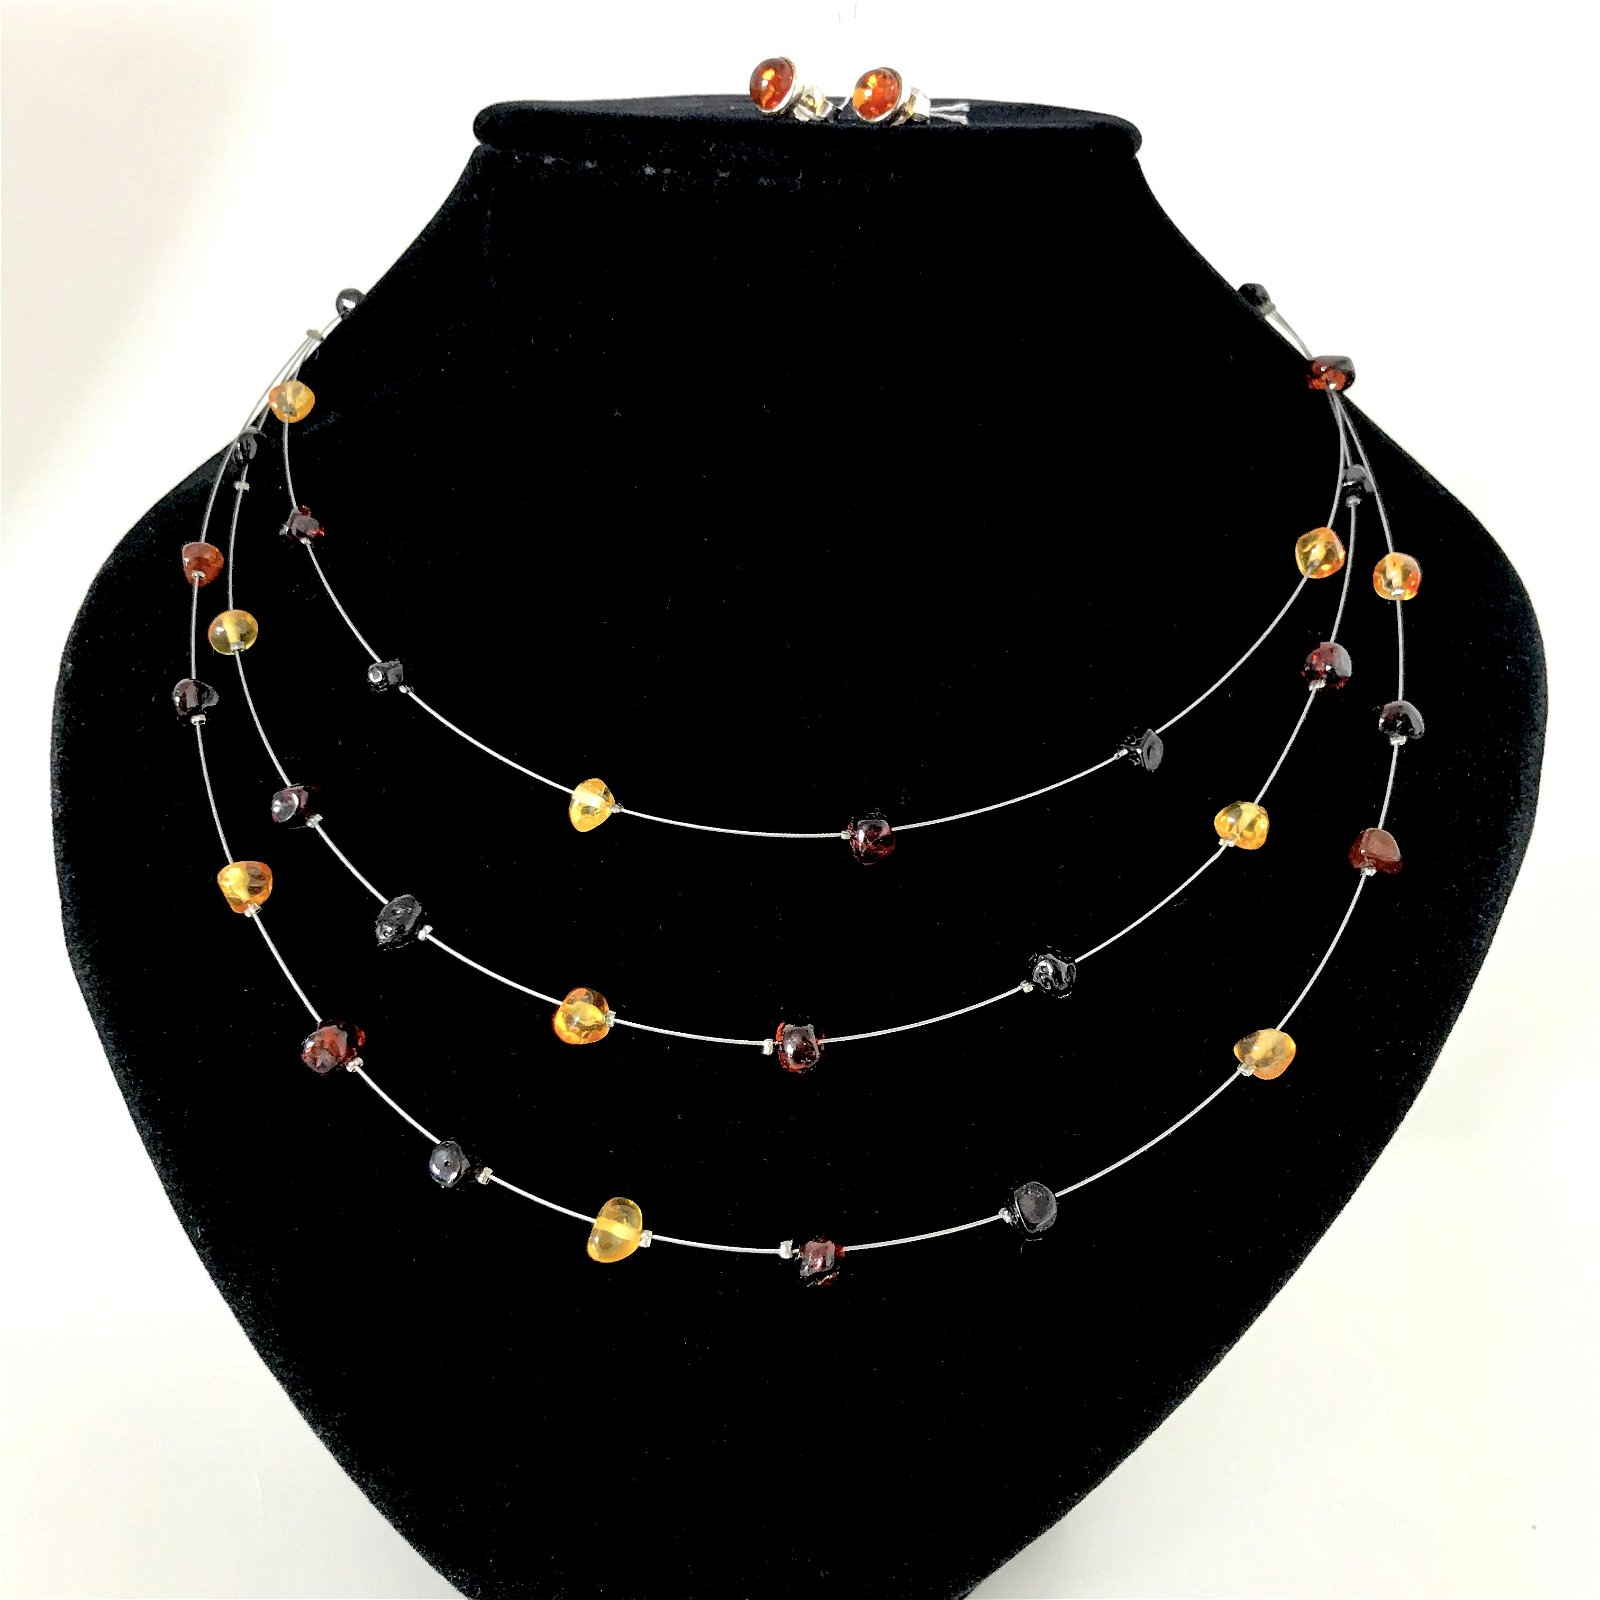 Amber necklace and silver earrings